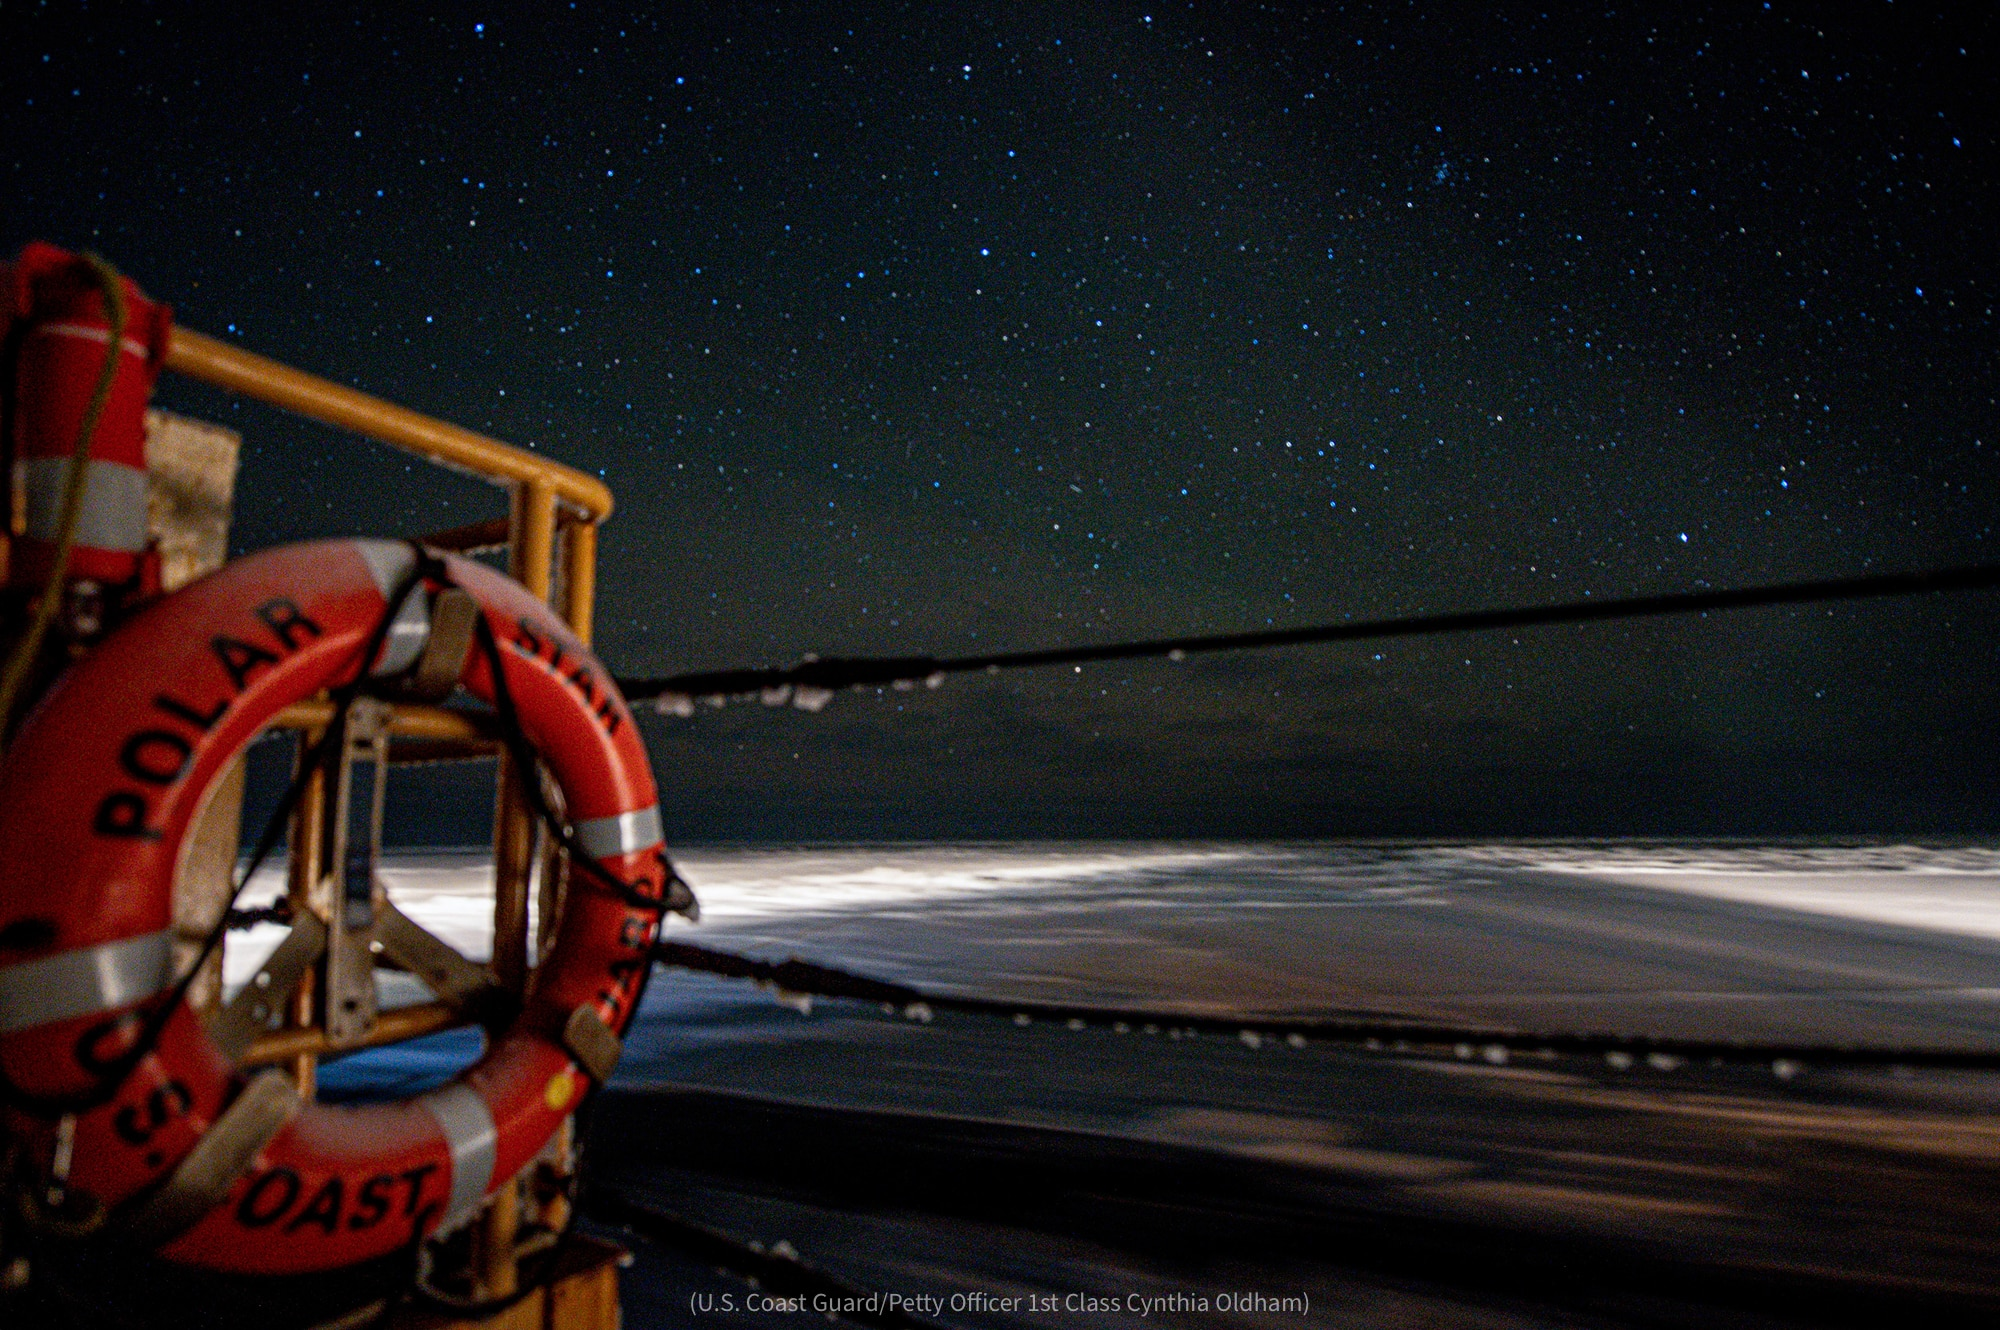 View past ship's buoy of snowy open water and starry night sky (U.S. Coast Guard/Petty Officer 1st Class Cynthia Oldham)